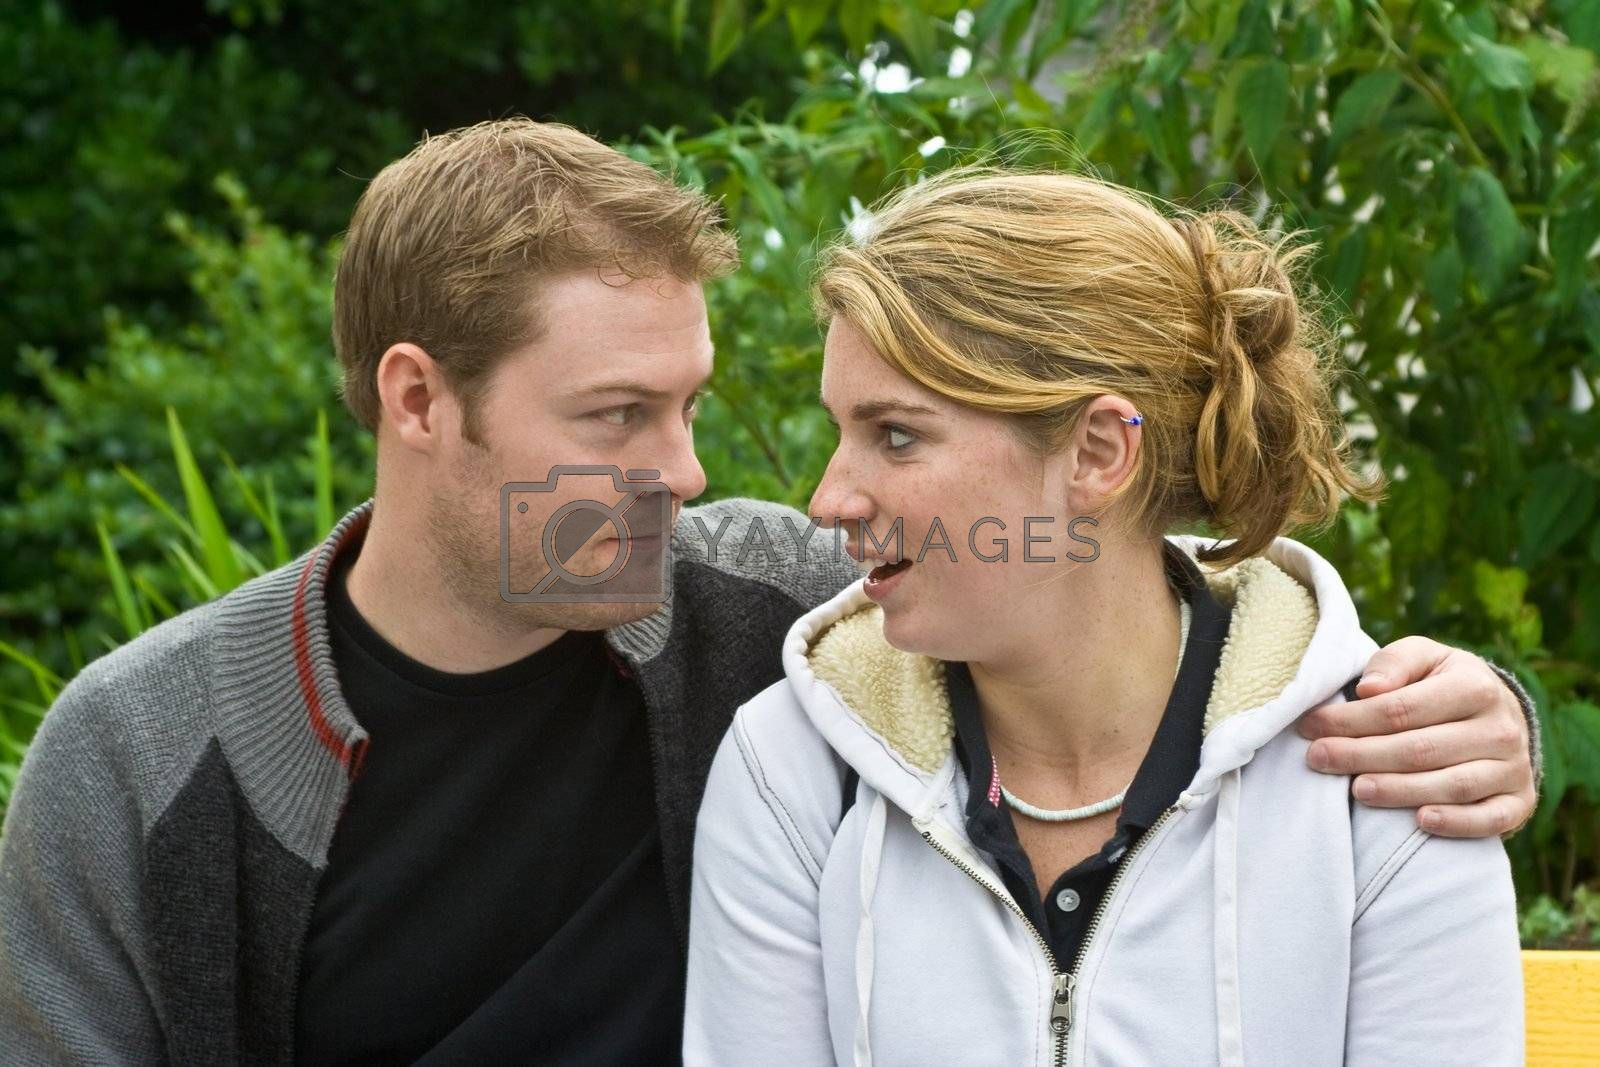 A young man and woman on a bench. The young man has his arm around the woman and they are enjoying each others company.